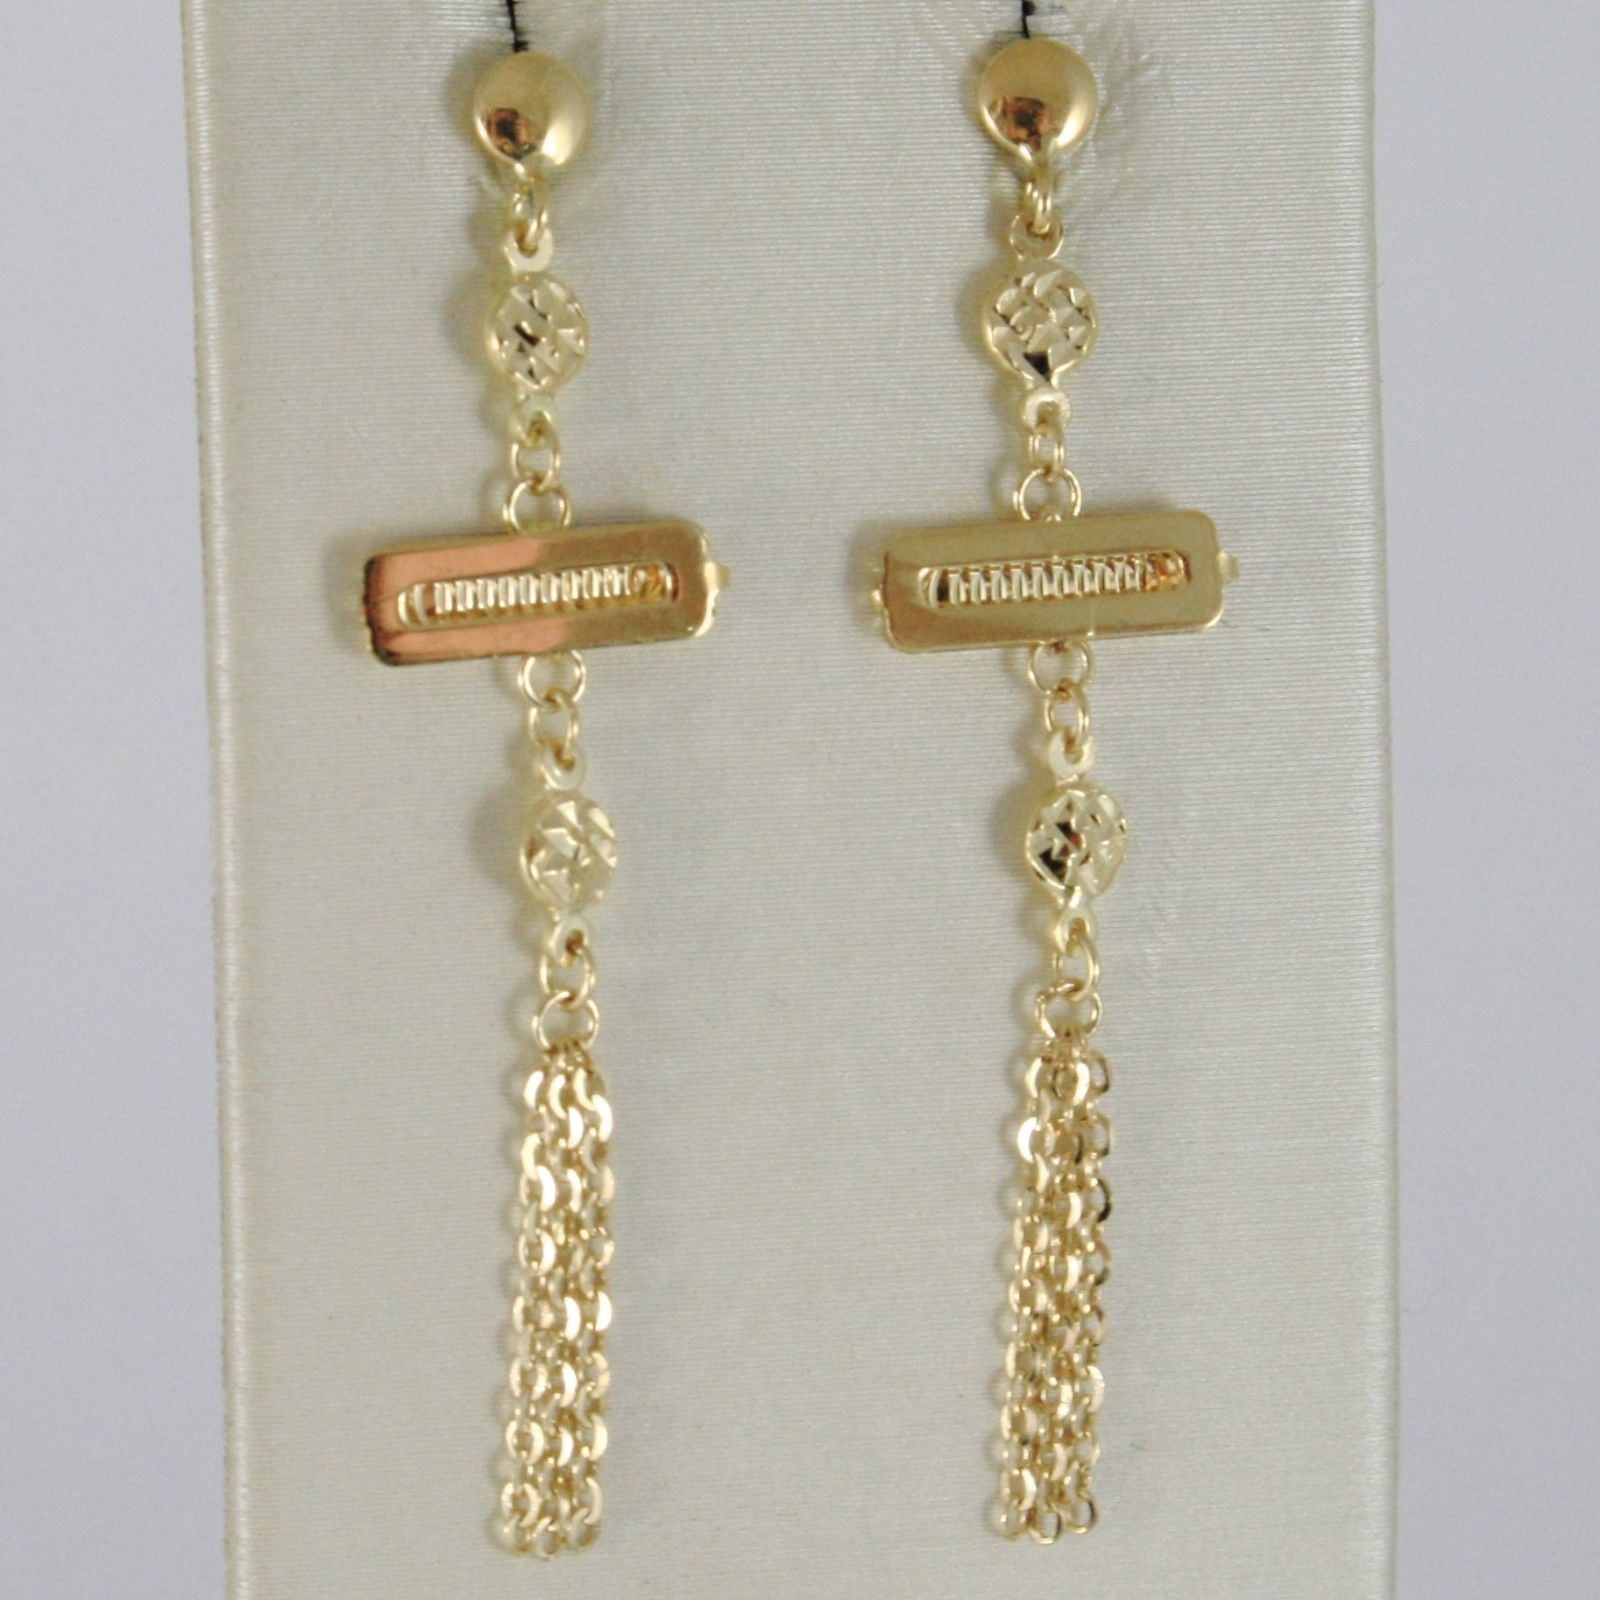 SOLID 18K YELLOW GOLD LONG PENDANT EARRINGS WITH WORKED DISC & ROLO FRINGE